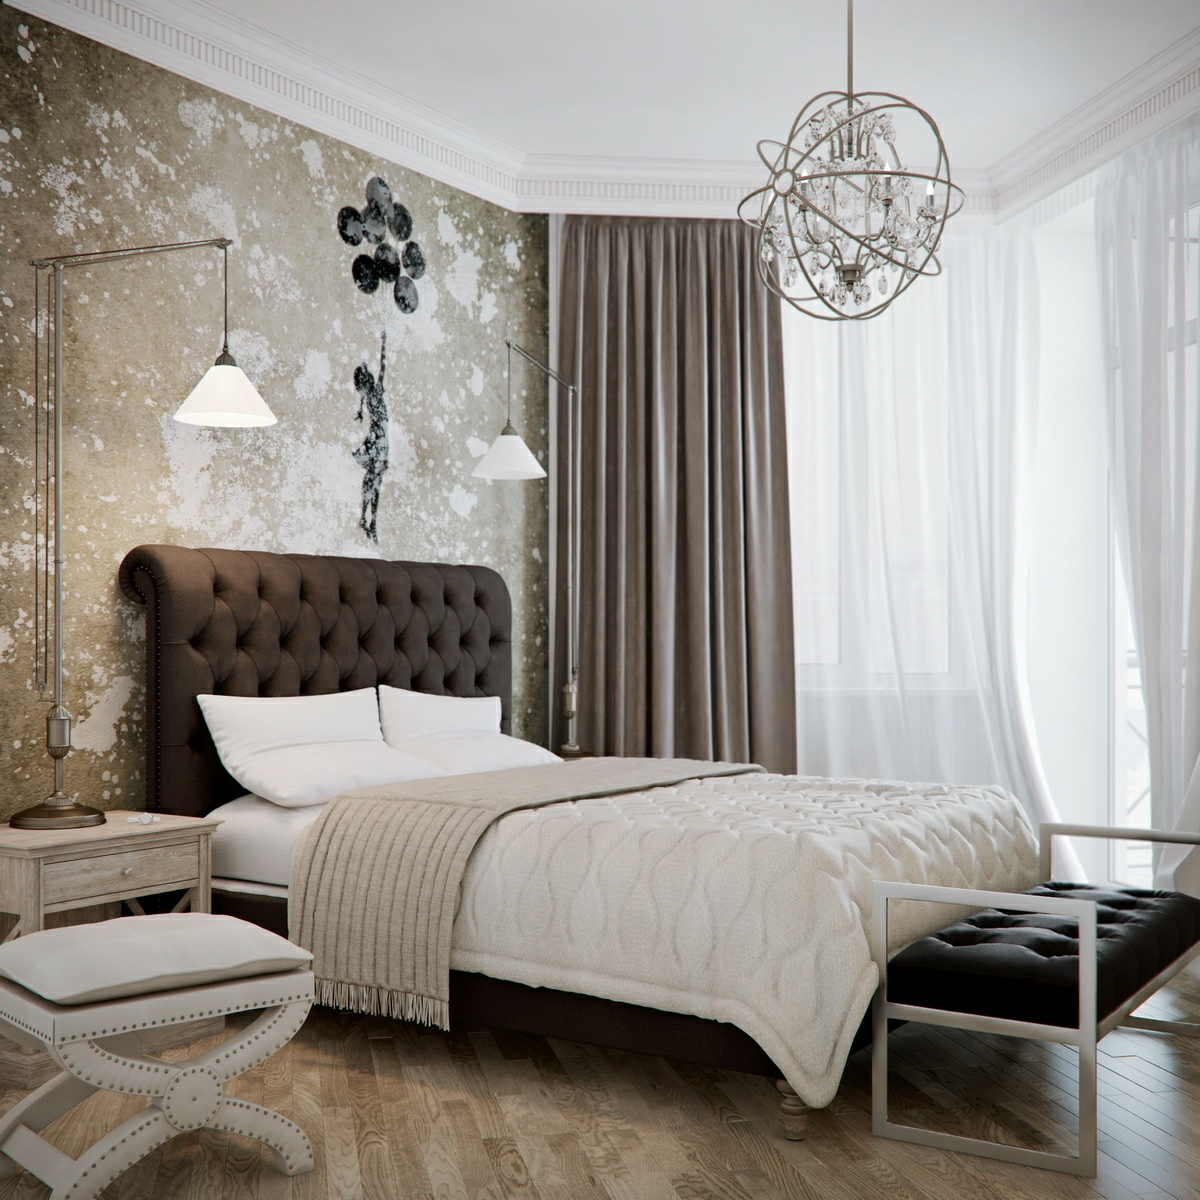 bedroom-light-ideas-94